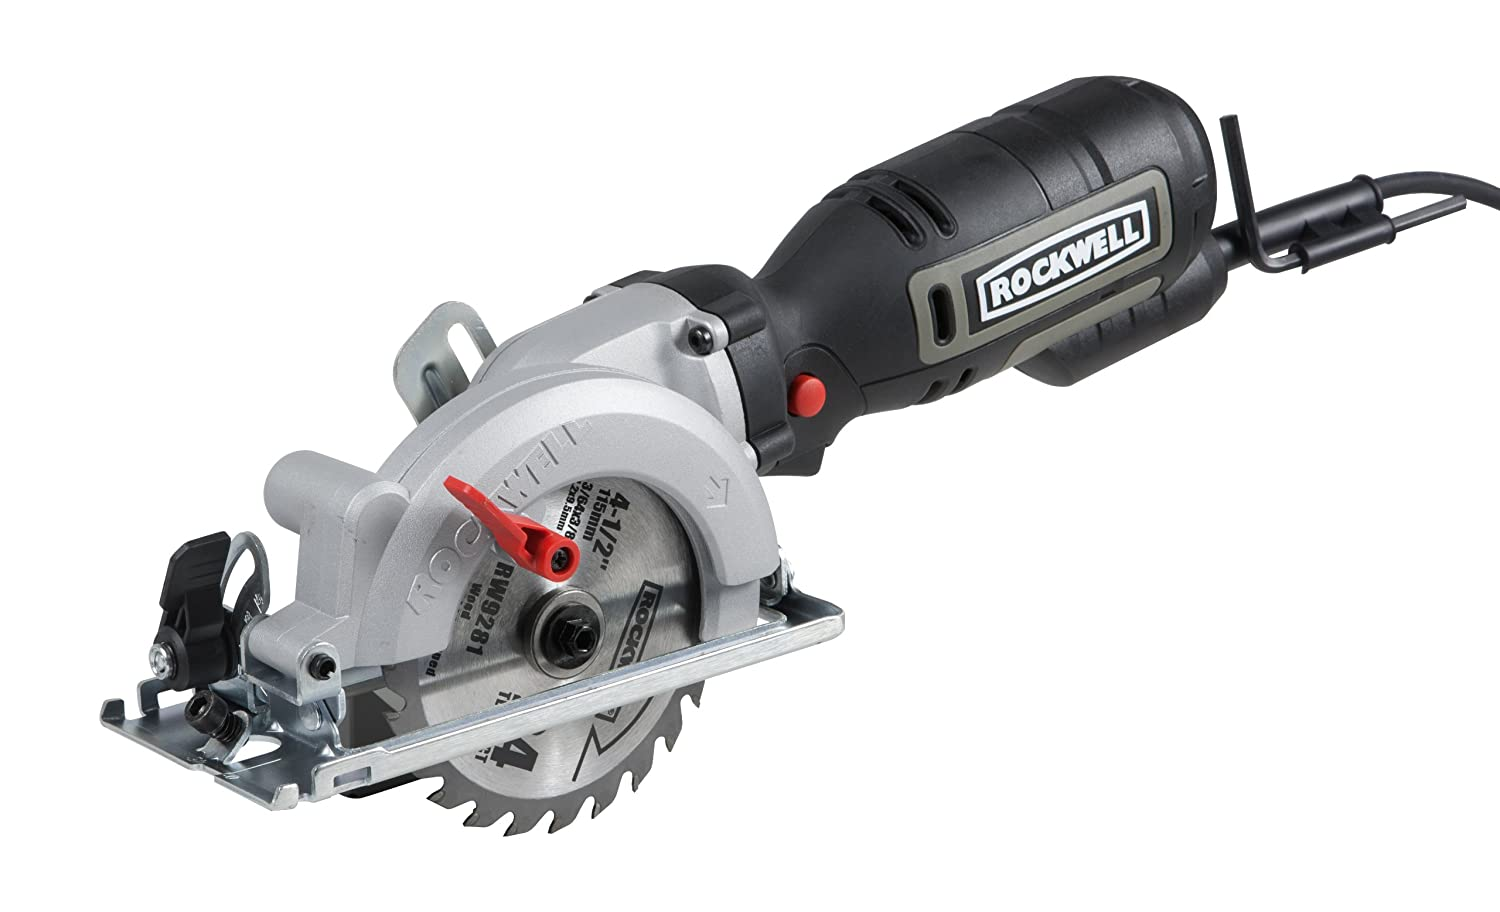 Rockwell RK3441K - Top Rated Compact Circular Saw